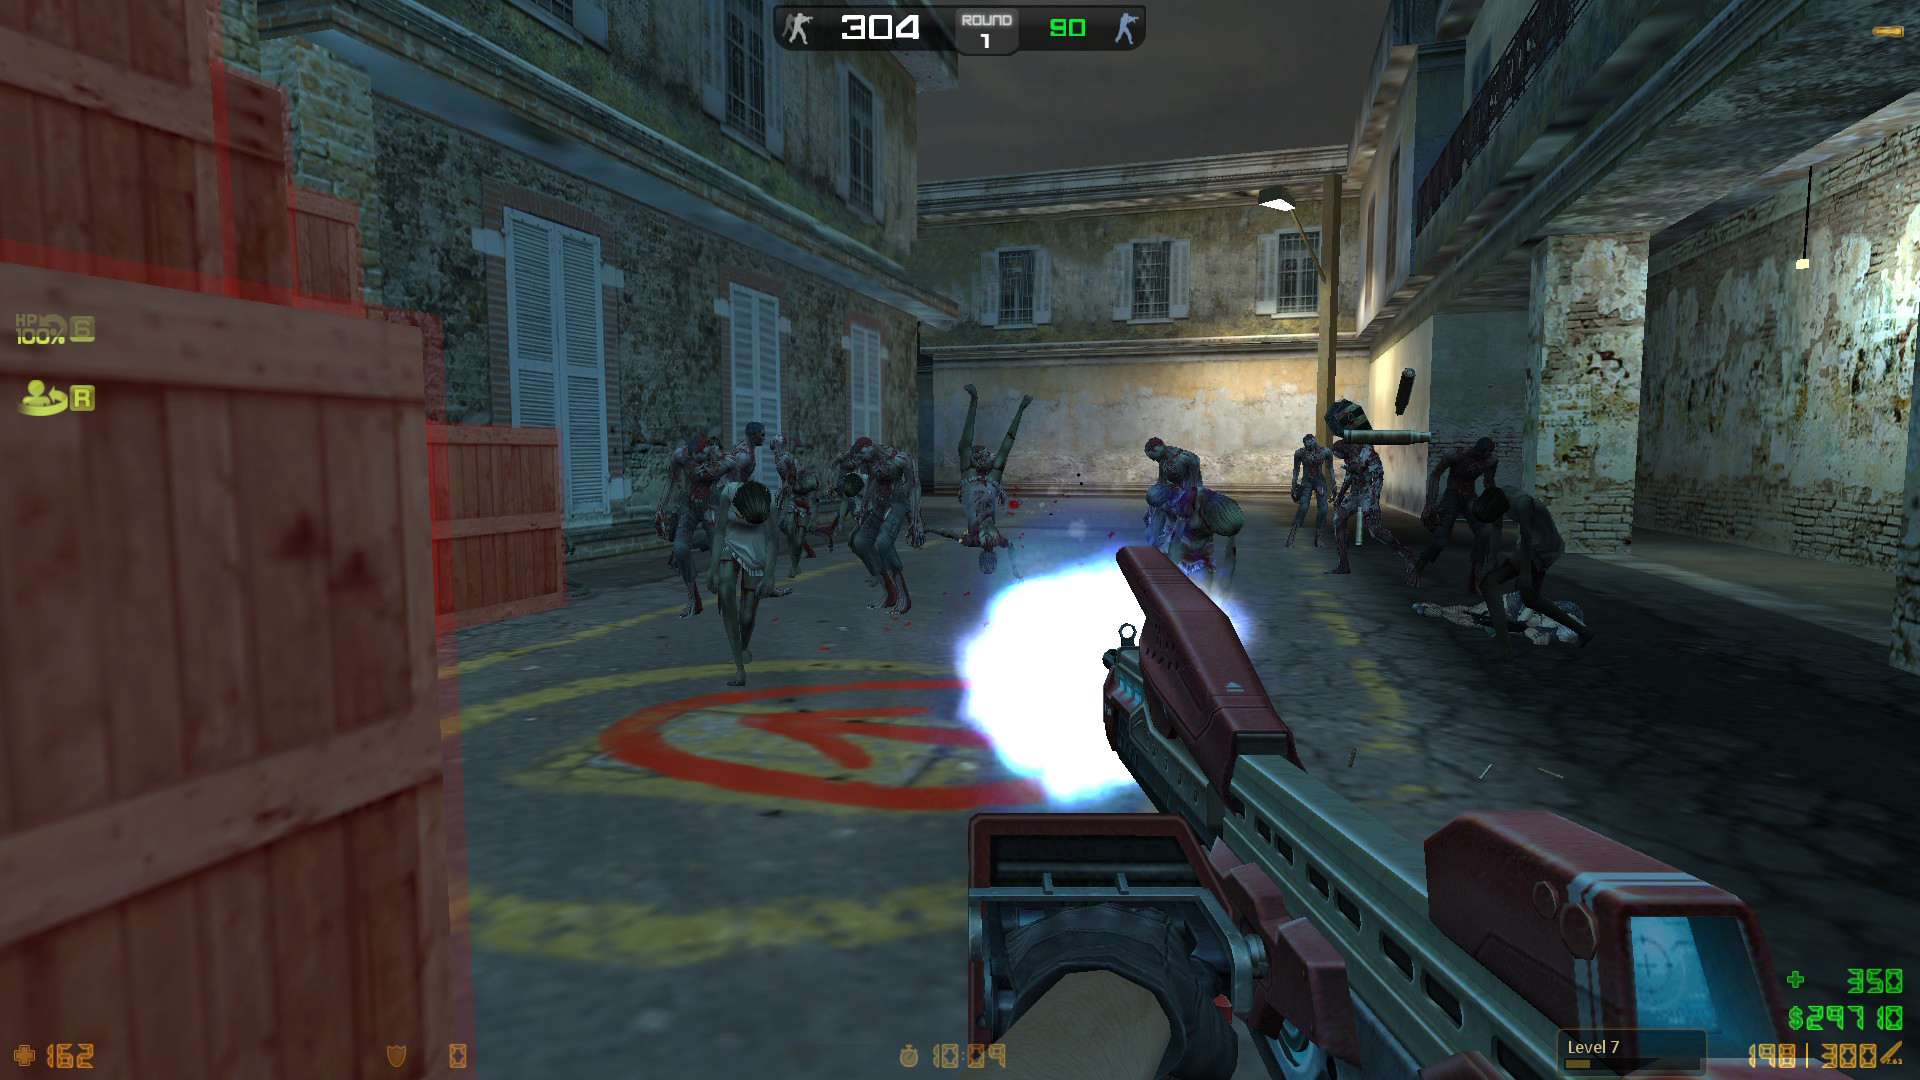 counter strike game free download for windows 7 ultimate